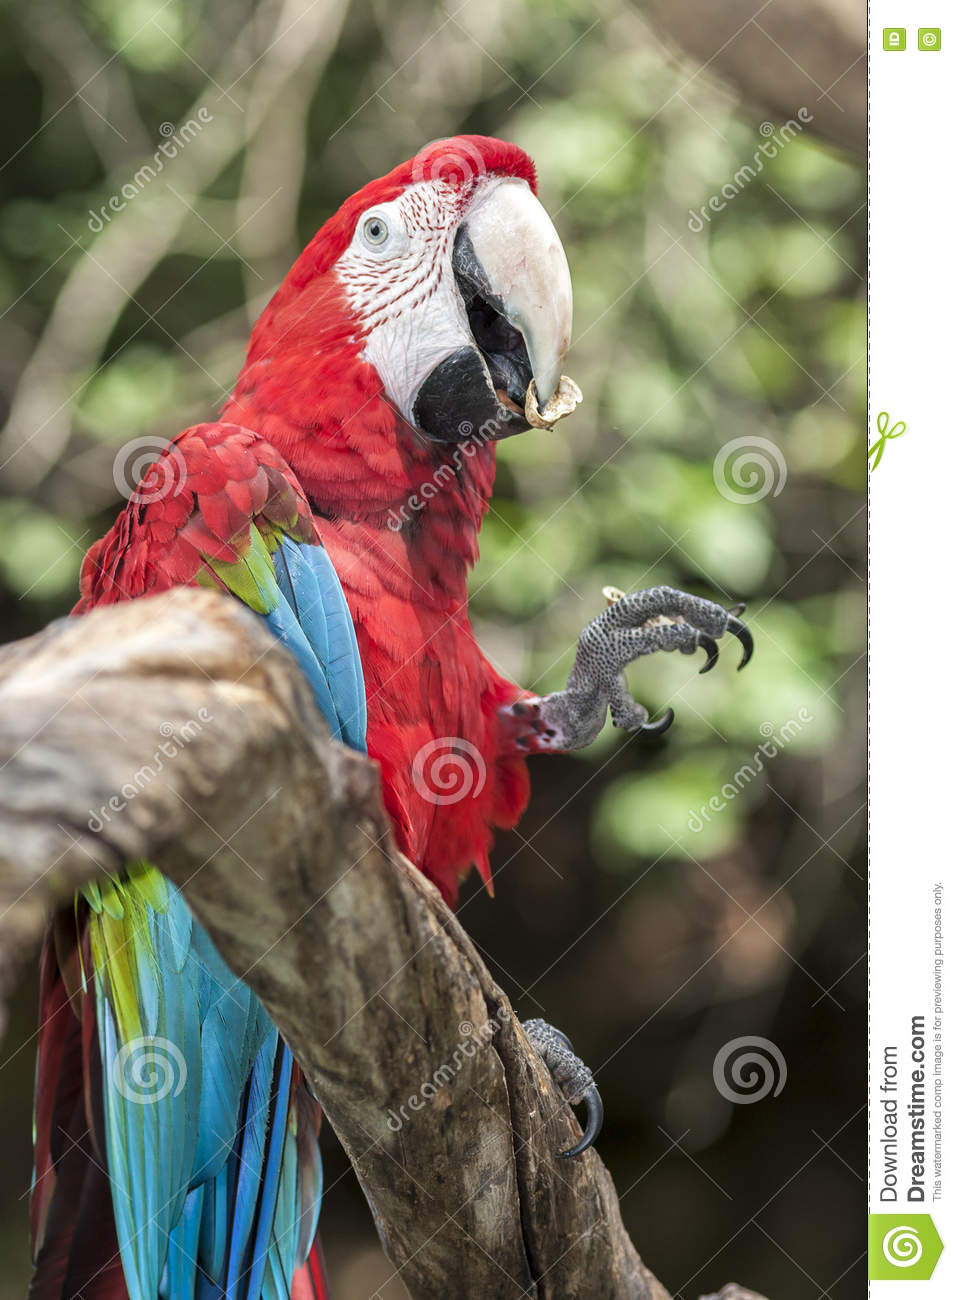 Red and Blue Parrot Sitting on Branch